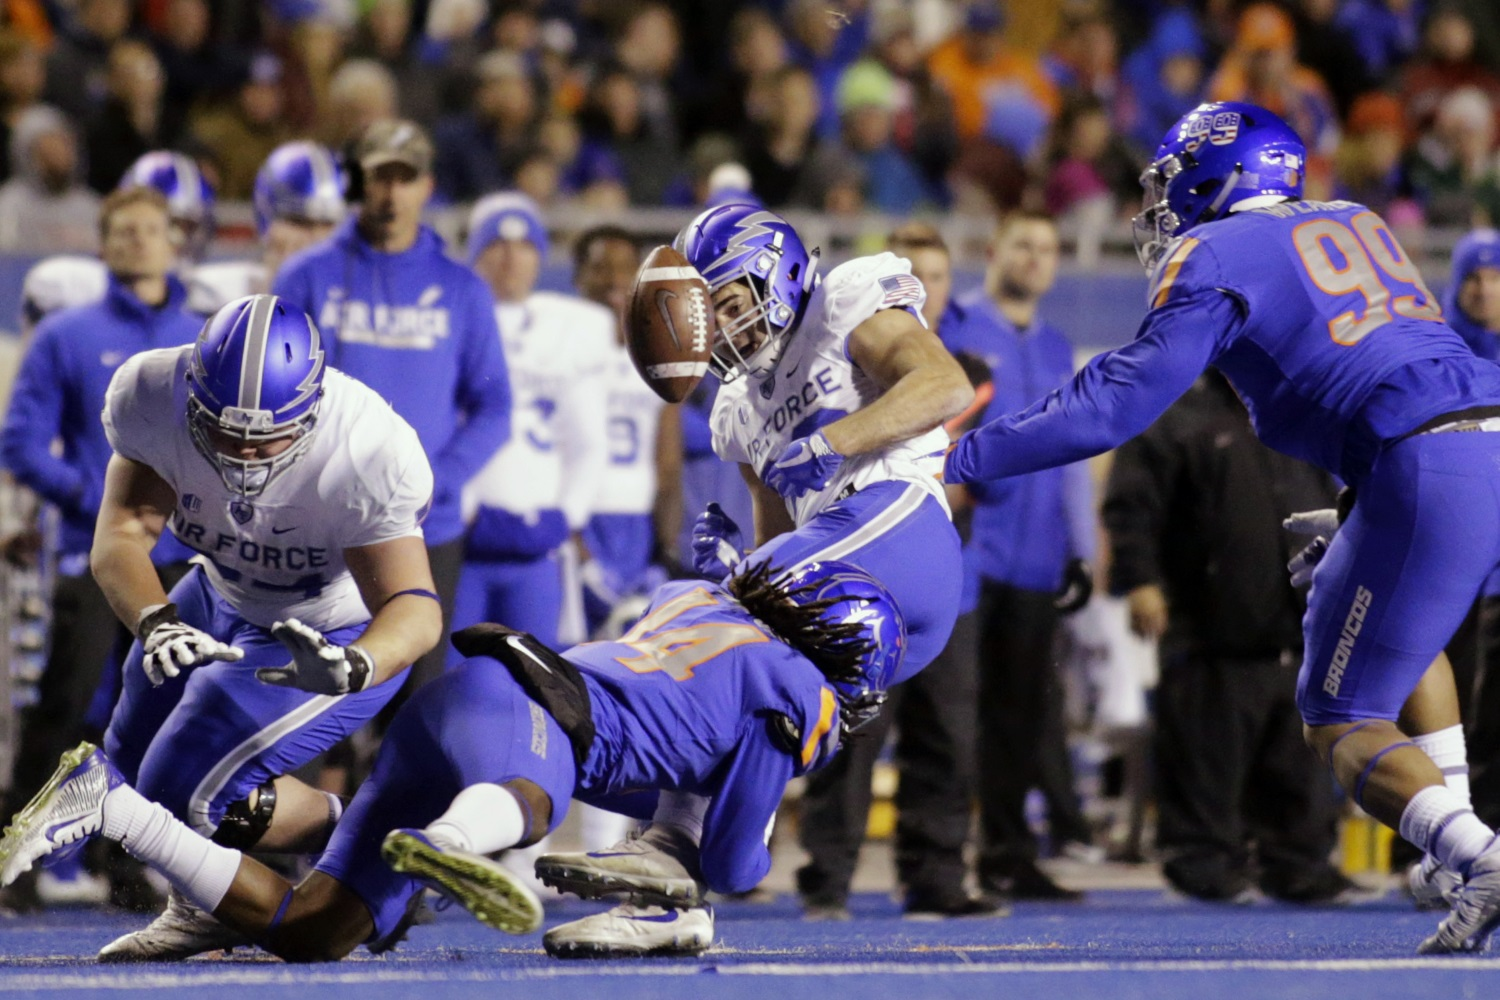 Air Force running back Tim McVey (33) fumbles the ball on a tackle by Boise State cornerback Tyler Horton (14) during the first half of an NCAA college football game in Boise, Idaho, Saturday, Nov. 18, 2017. (Otto Kitsinger/AP)